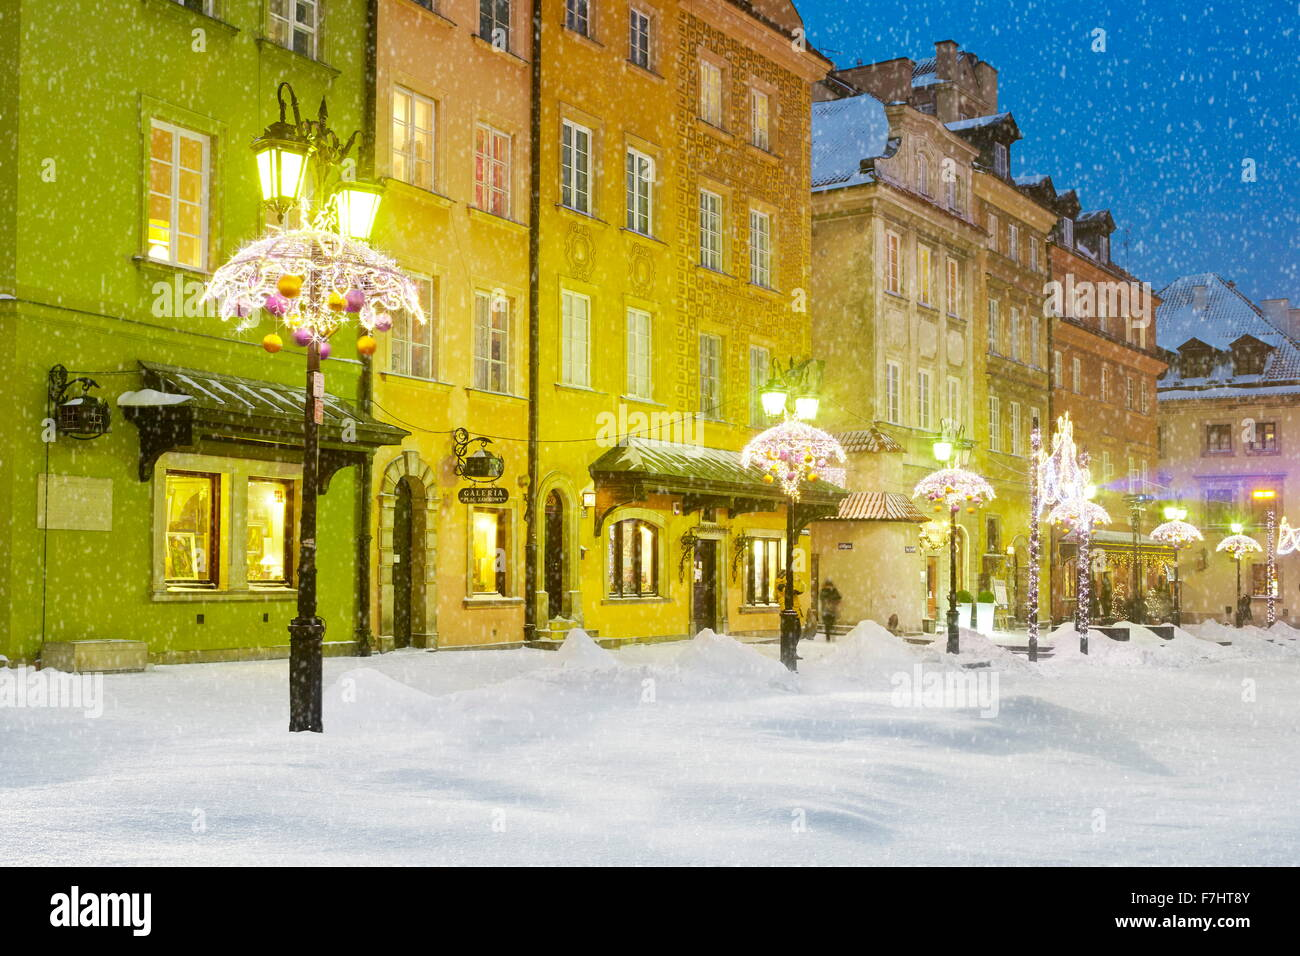 Outdoor winter snow christmas decoration, Warsaw, Poland - Stock Image